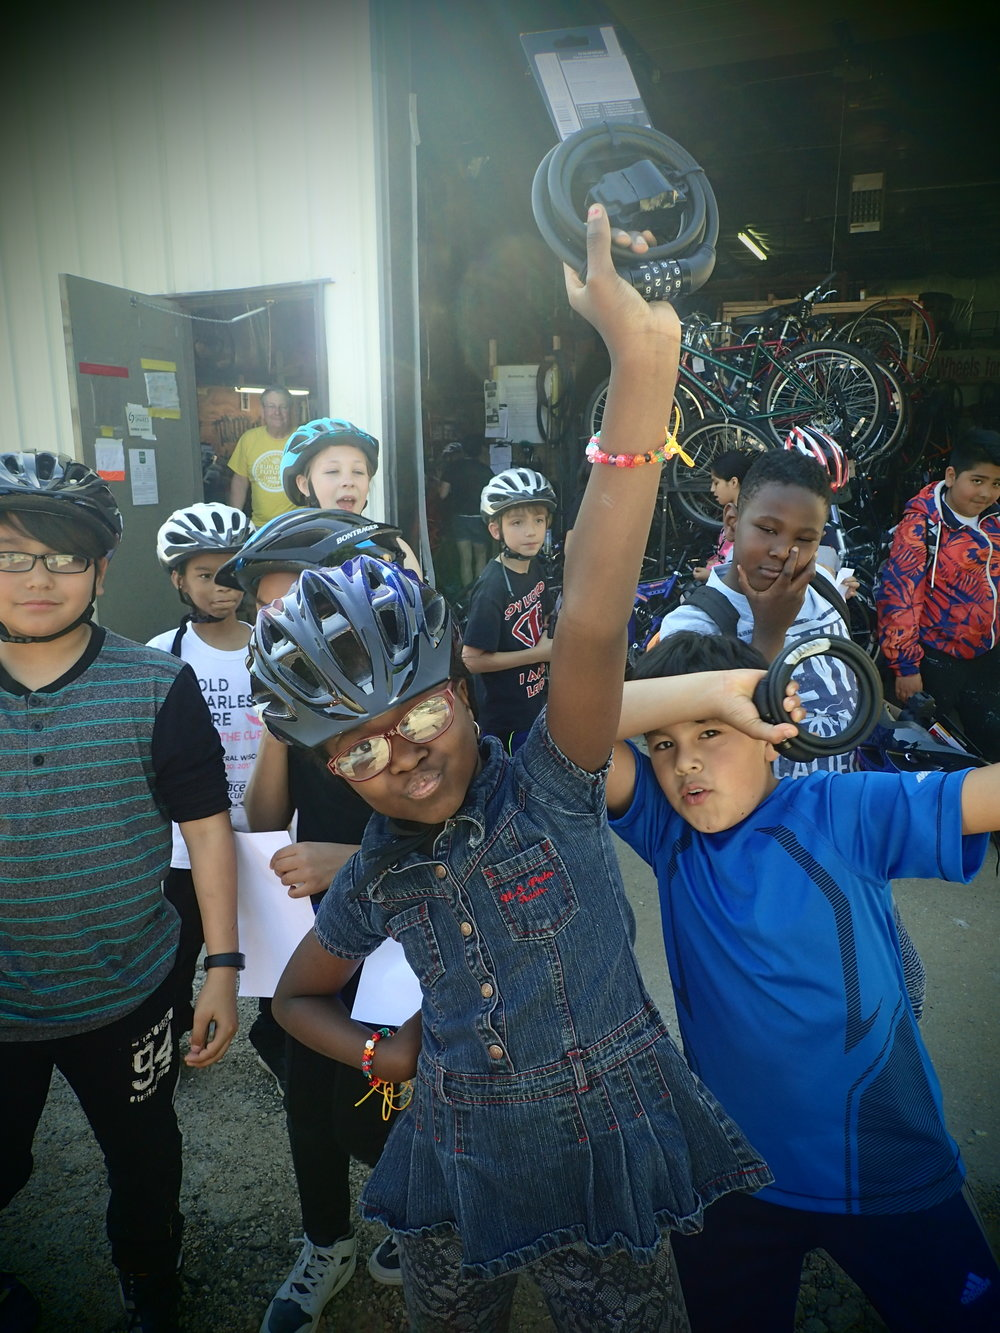 A lively group from Leopold Elementary's Student Advocacy Team came by to pick up their bicycles, helmets, and locks. With the help of Healthy Kids Collaborative, this group of nominated 3rd-5th grade leaders met weekly to assess the health and wellness of their school grounds and local neighborhood. They created a presentation detailing strengths and challenges, and they provided suggestions for improvement. Their presentation was received by the Madison Bike Equity committee.